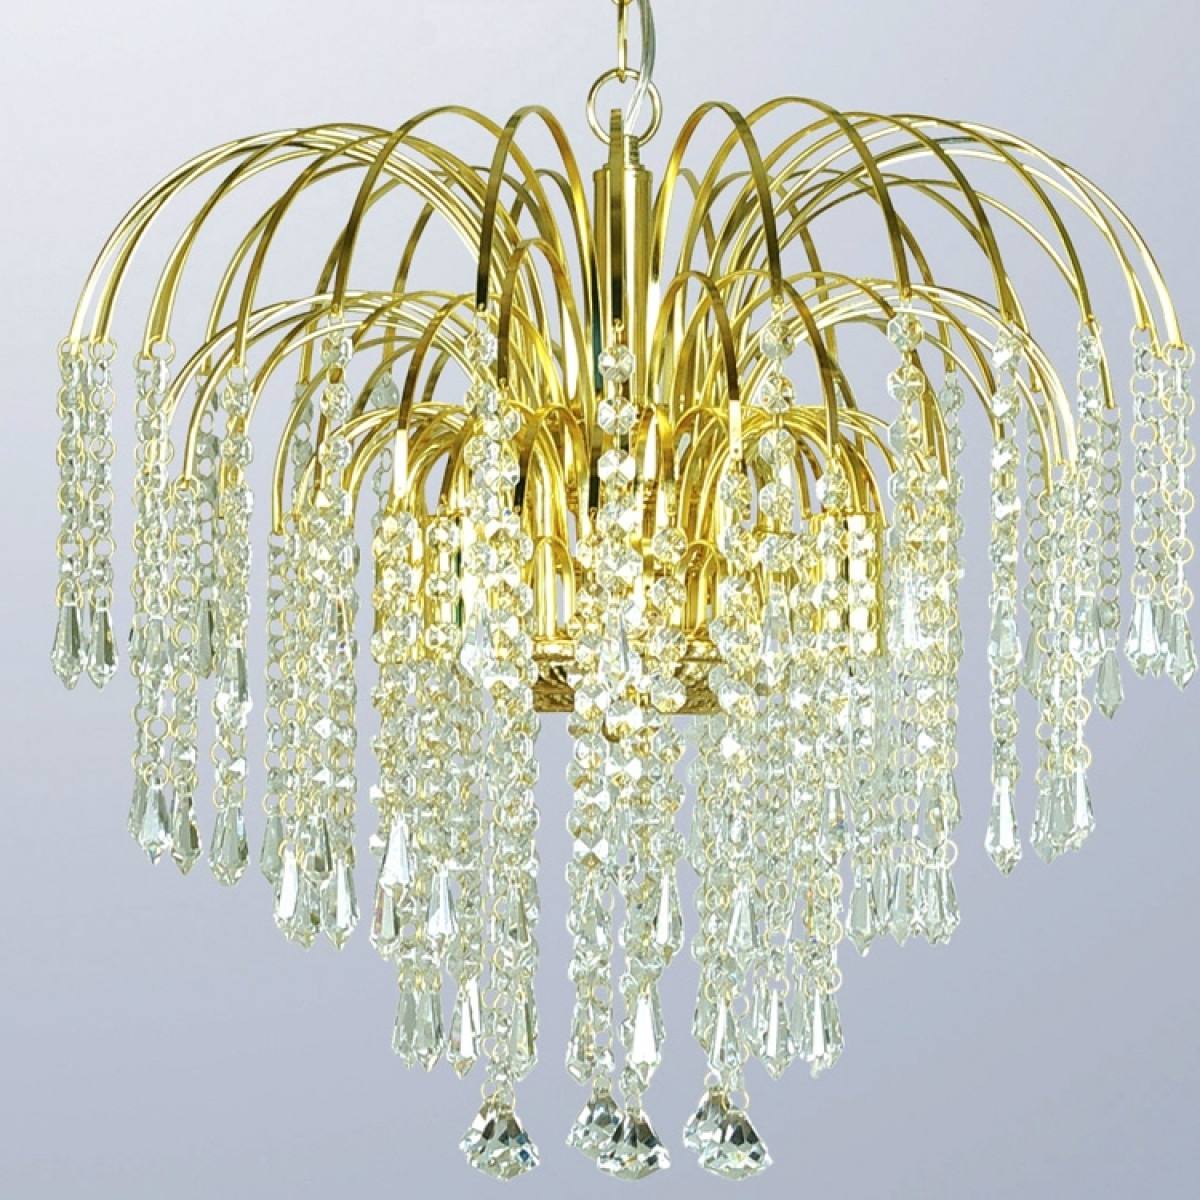 Waterfall Chandeliers For Well Known Waterfall Four Light Gold Crystal Chandelier (View 4 of 15)